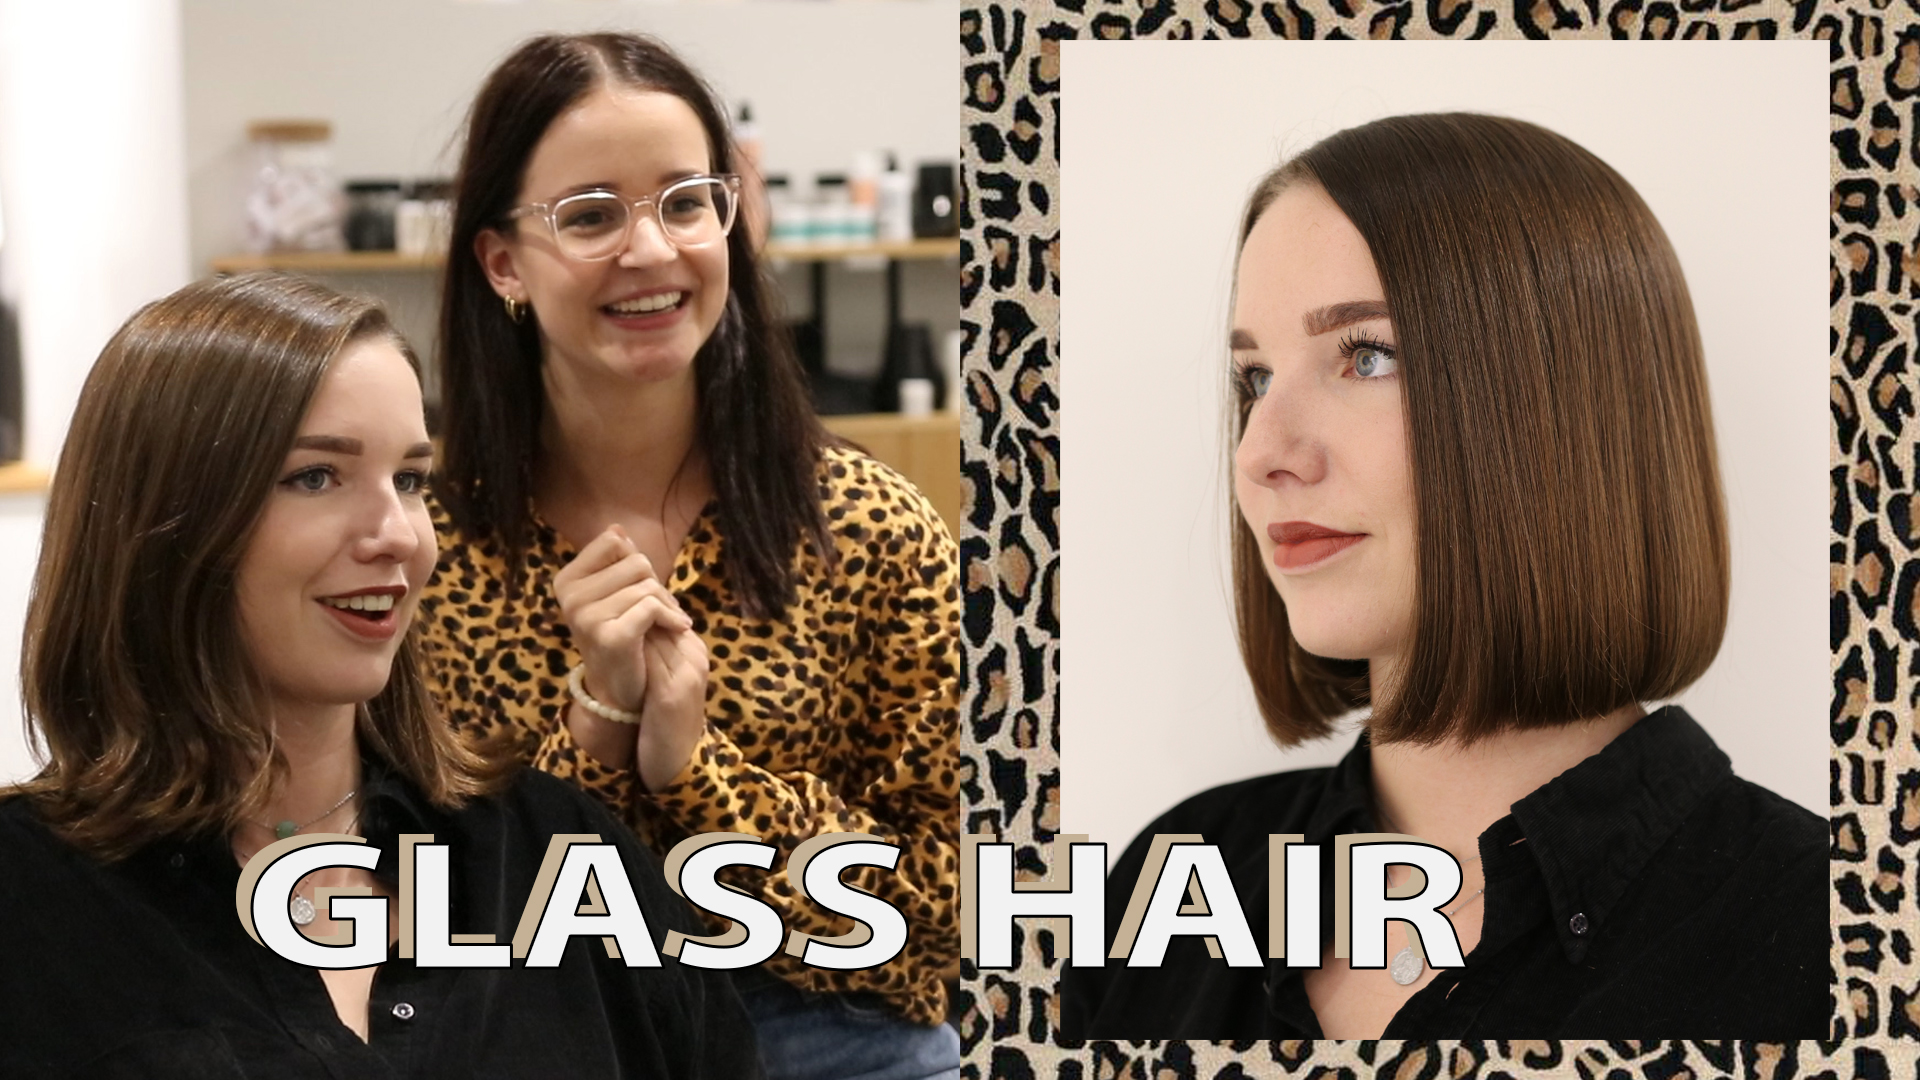 Make-over: Glass hair